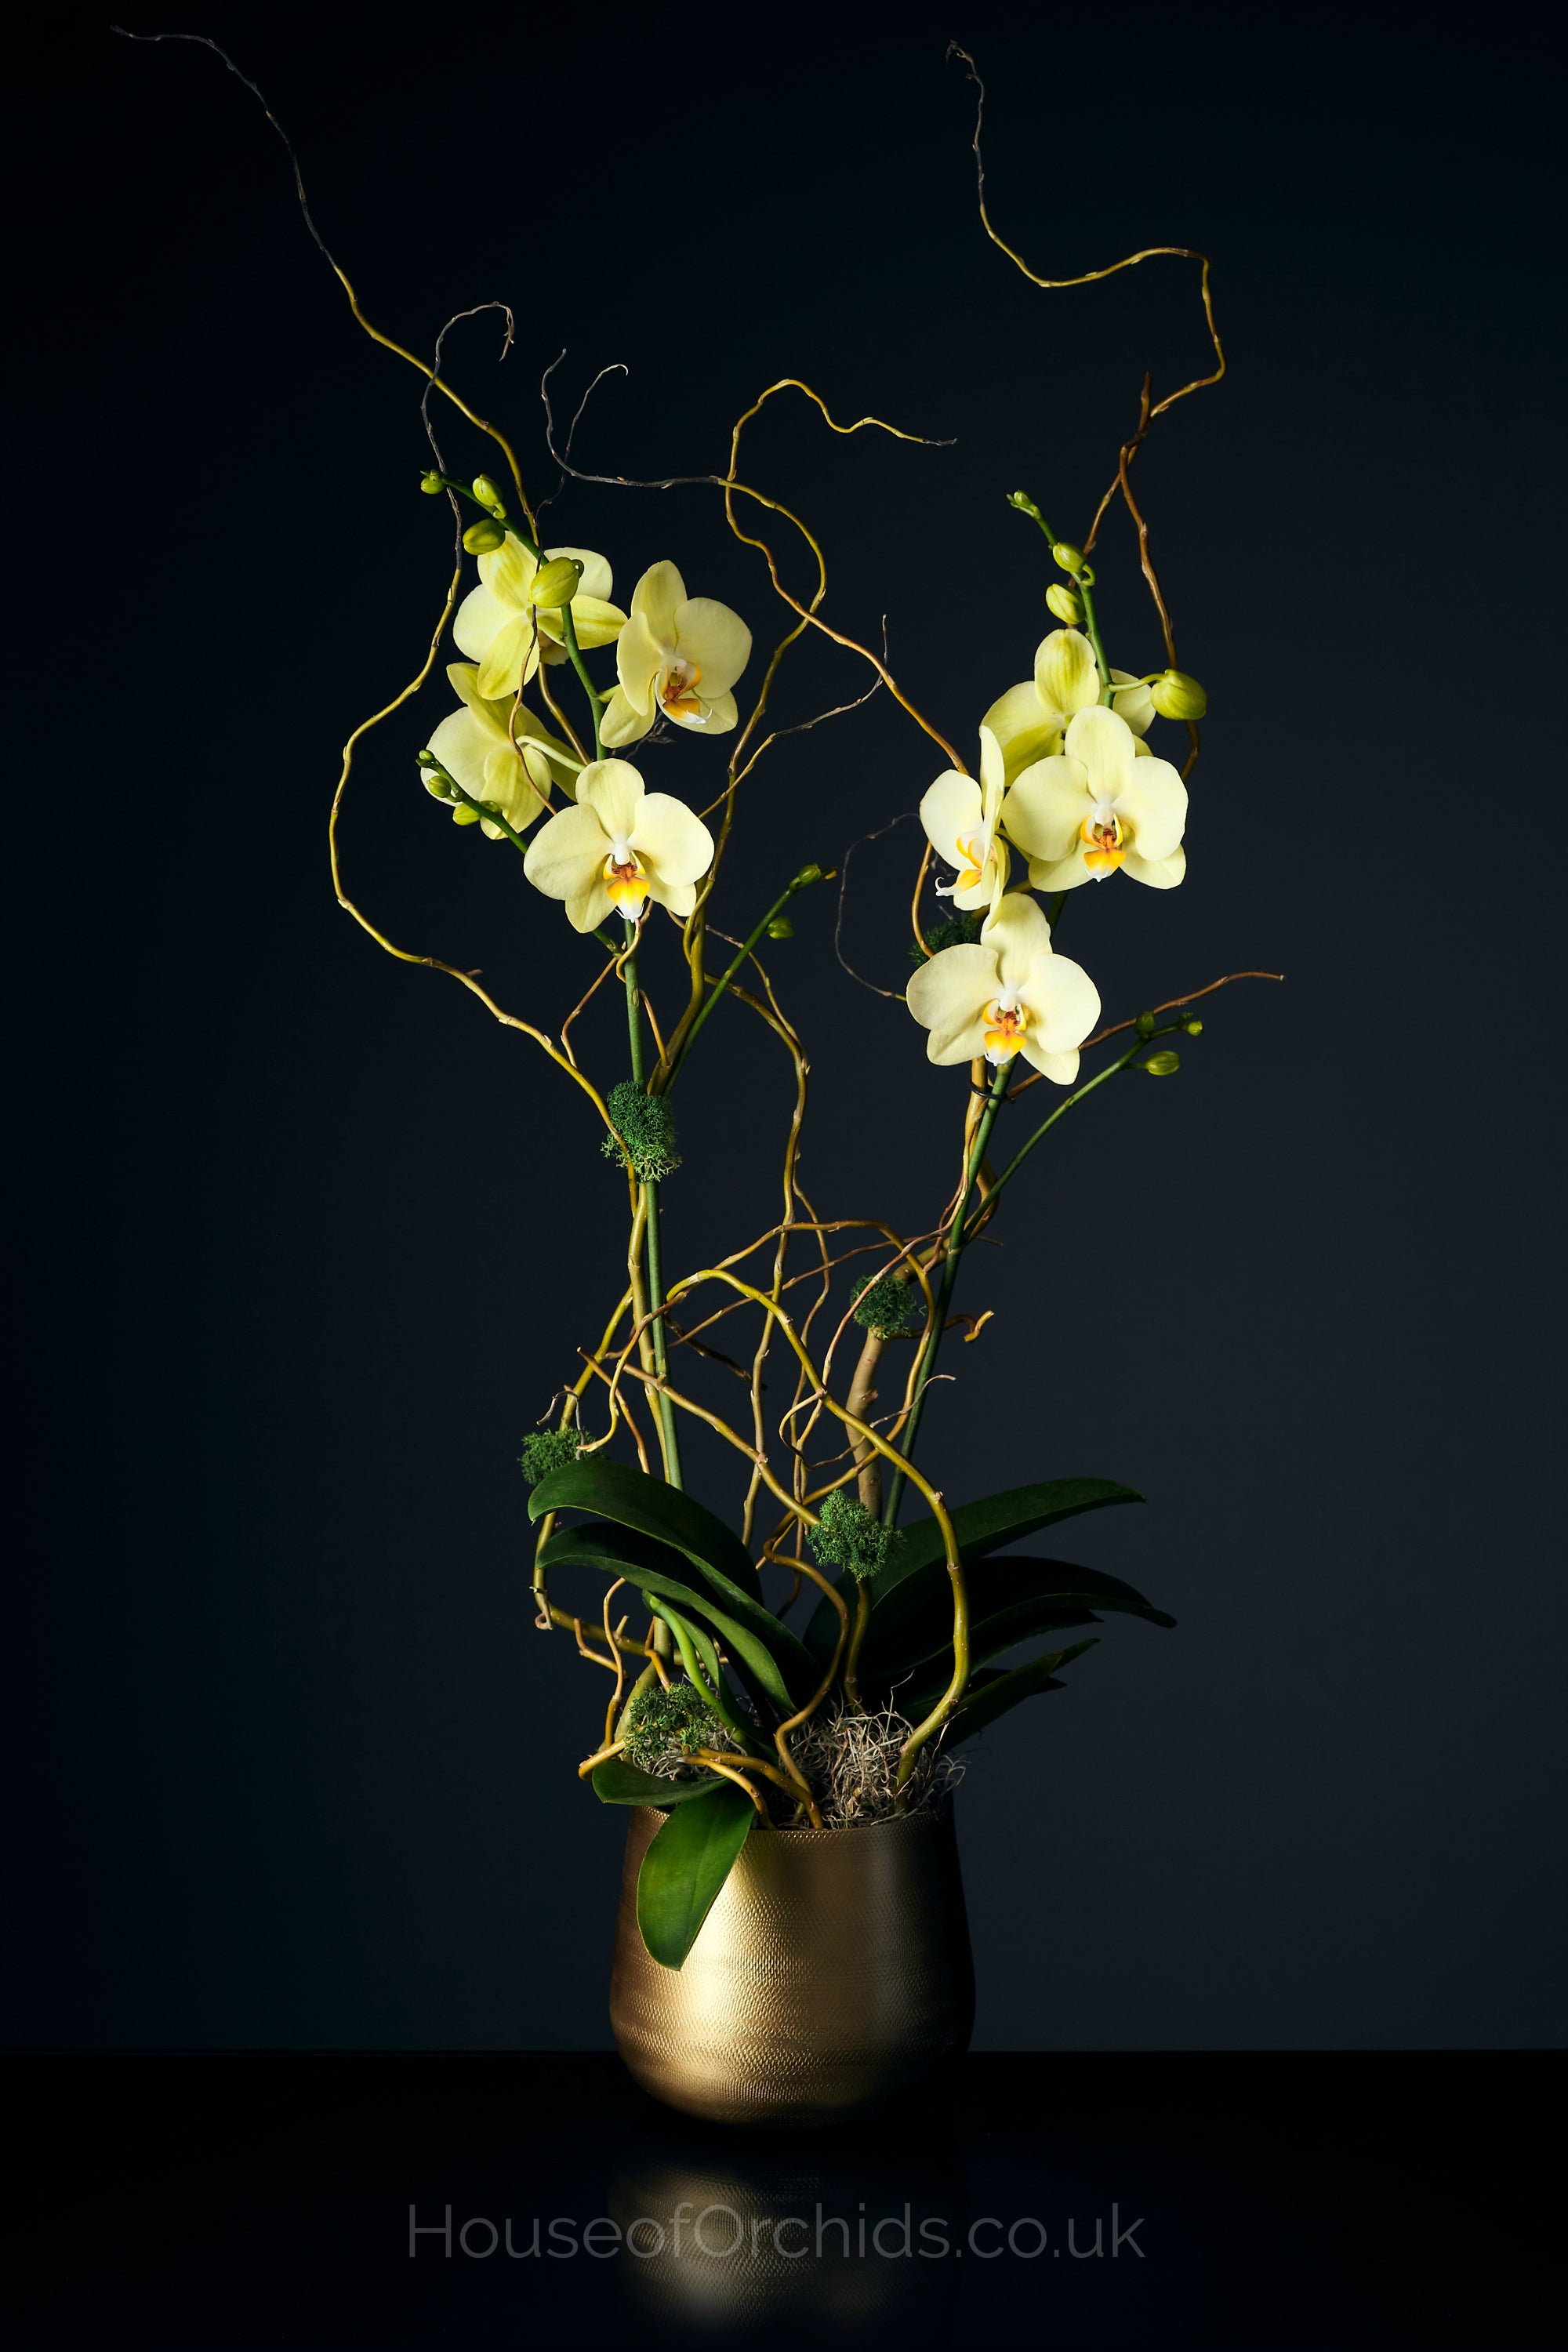 House of Orchids London - Luxury Orchid Delivery